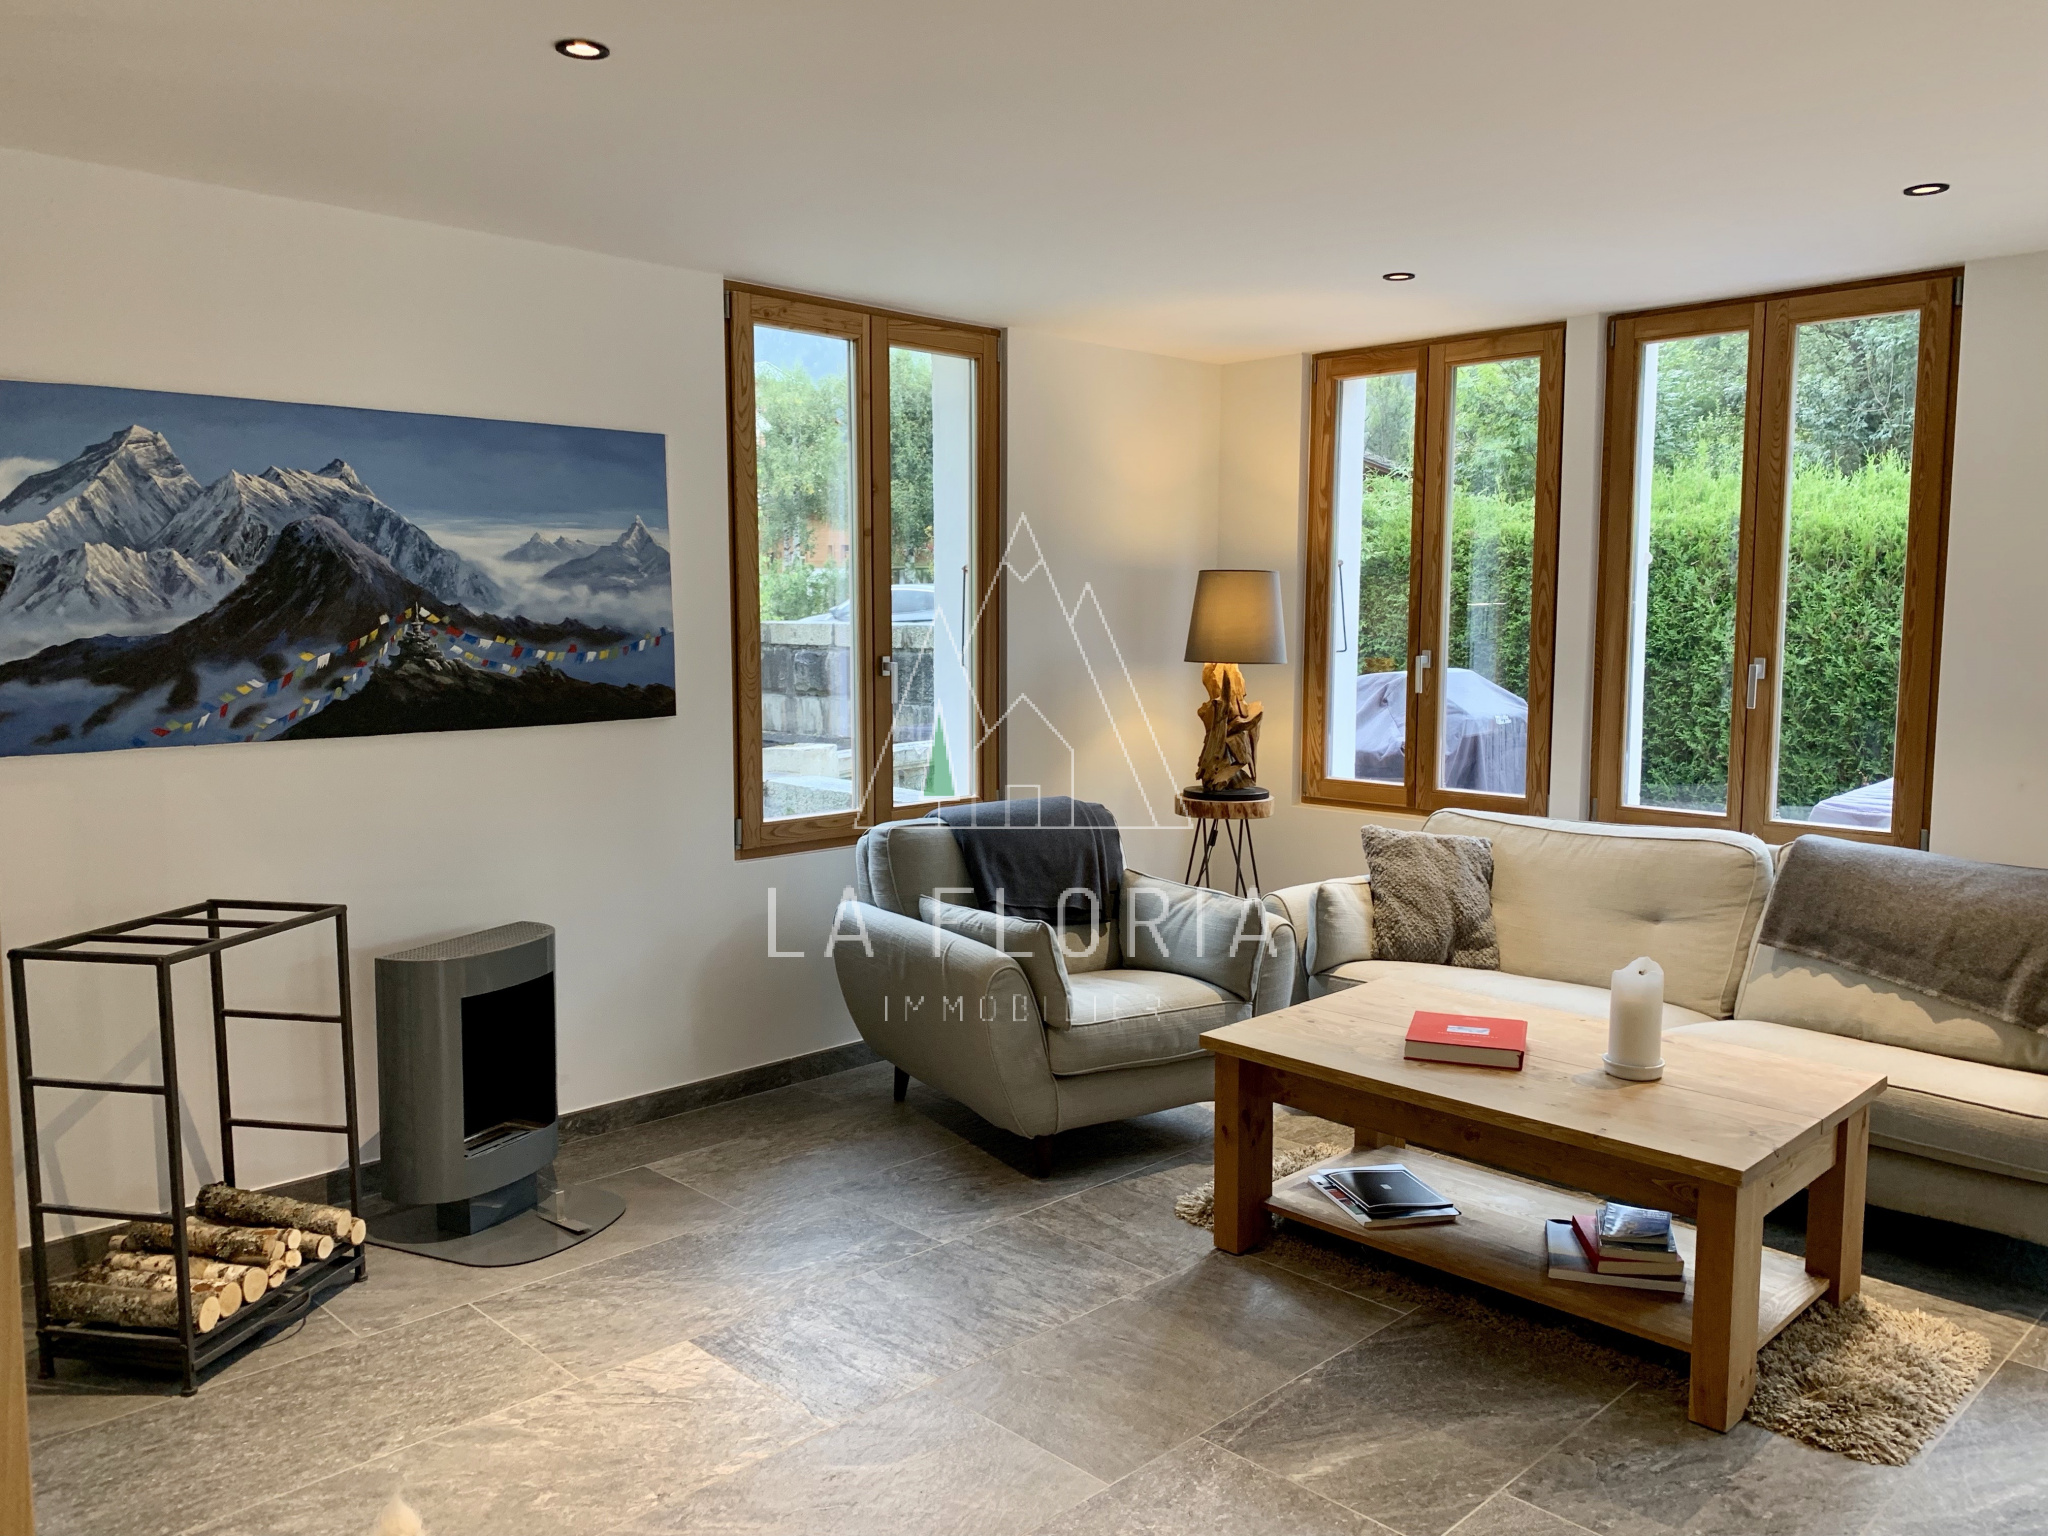 REFURBISHED CHALET WITH SELF CONTAINED APARTMENT, CHAMONIX